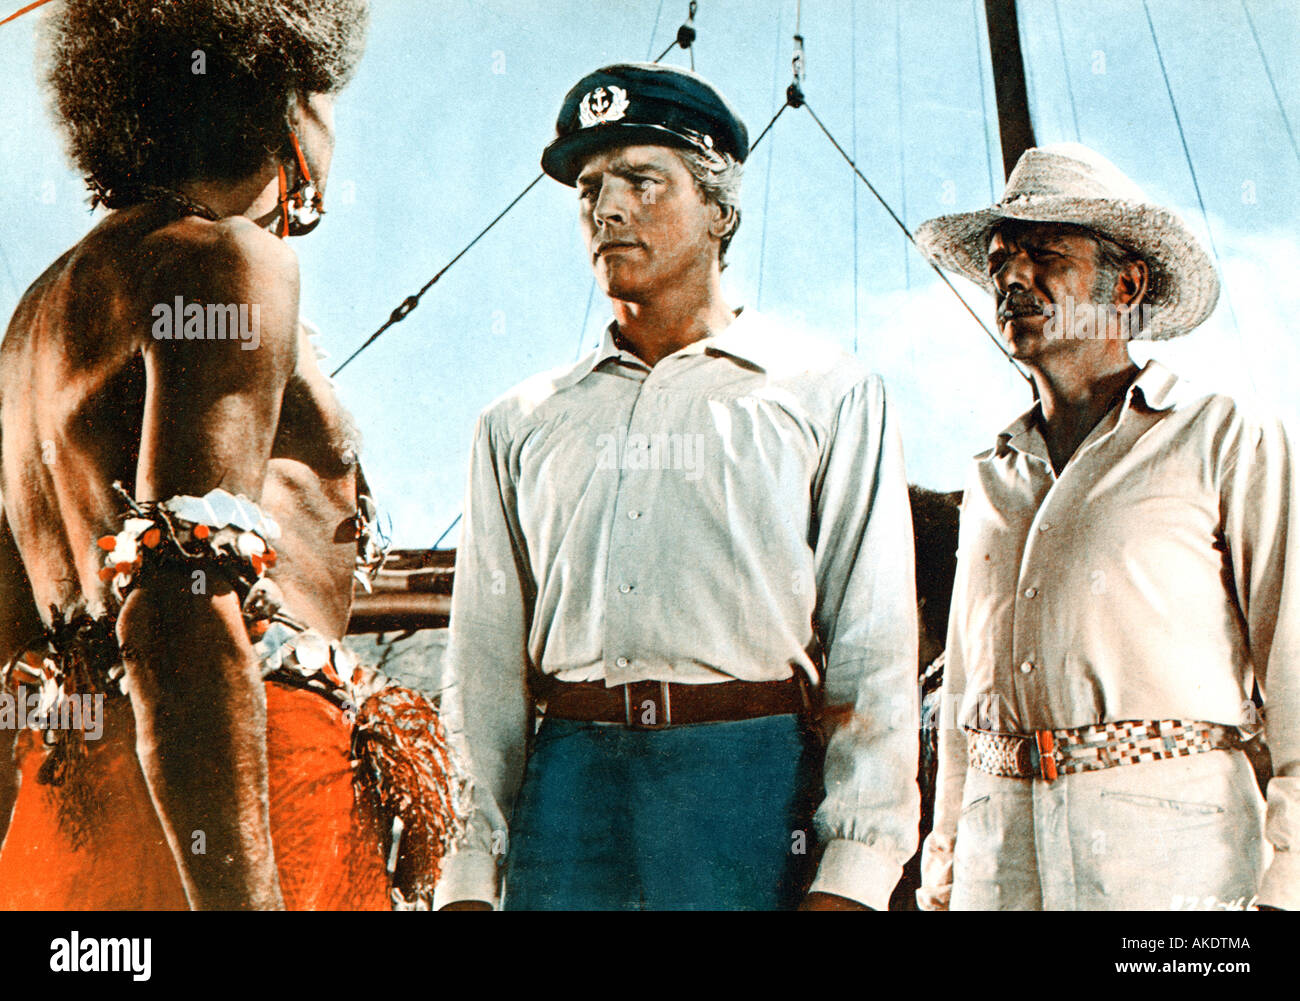 HIS MAJESTY O KEEFE 1954 Warner film with Burt Lancaster centre - Stock Image